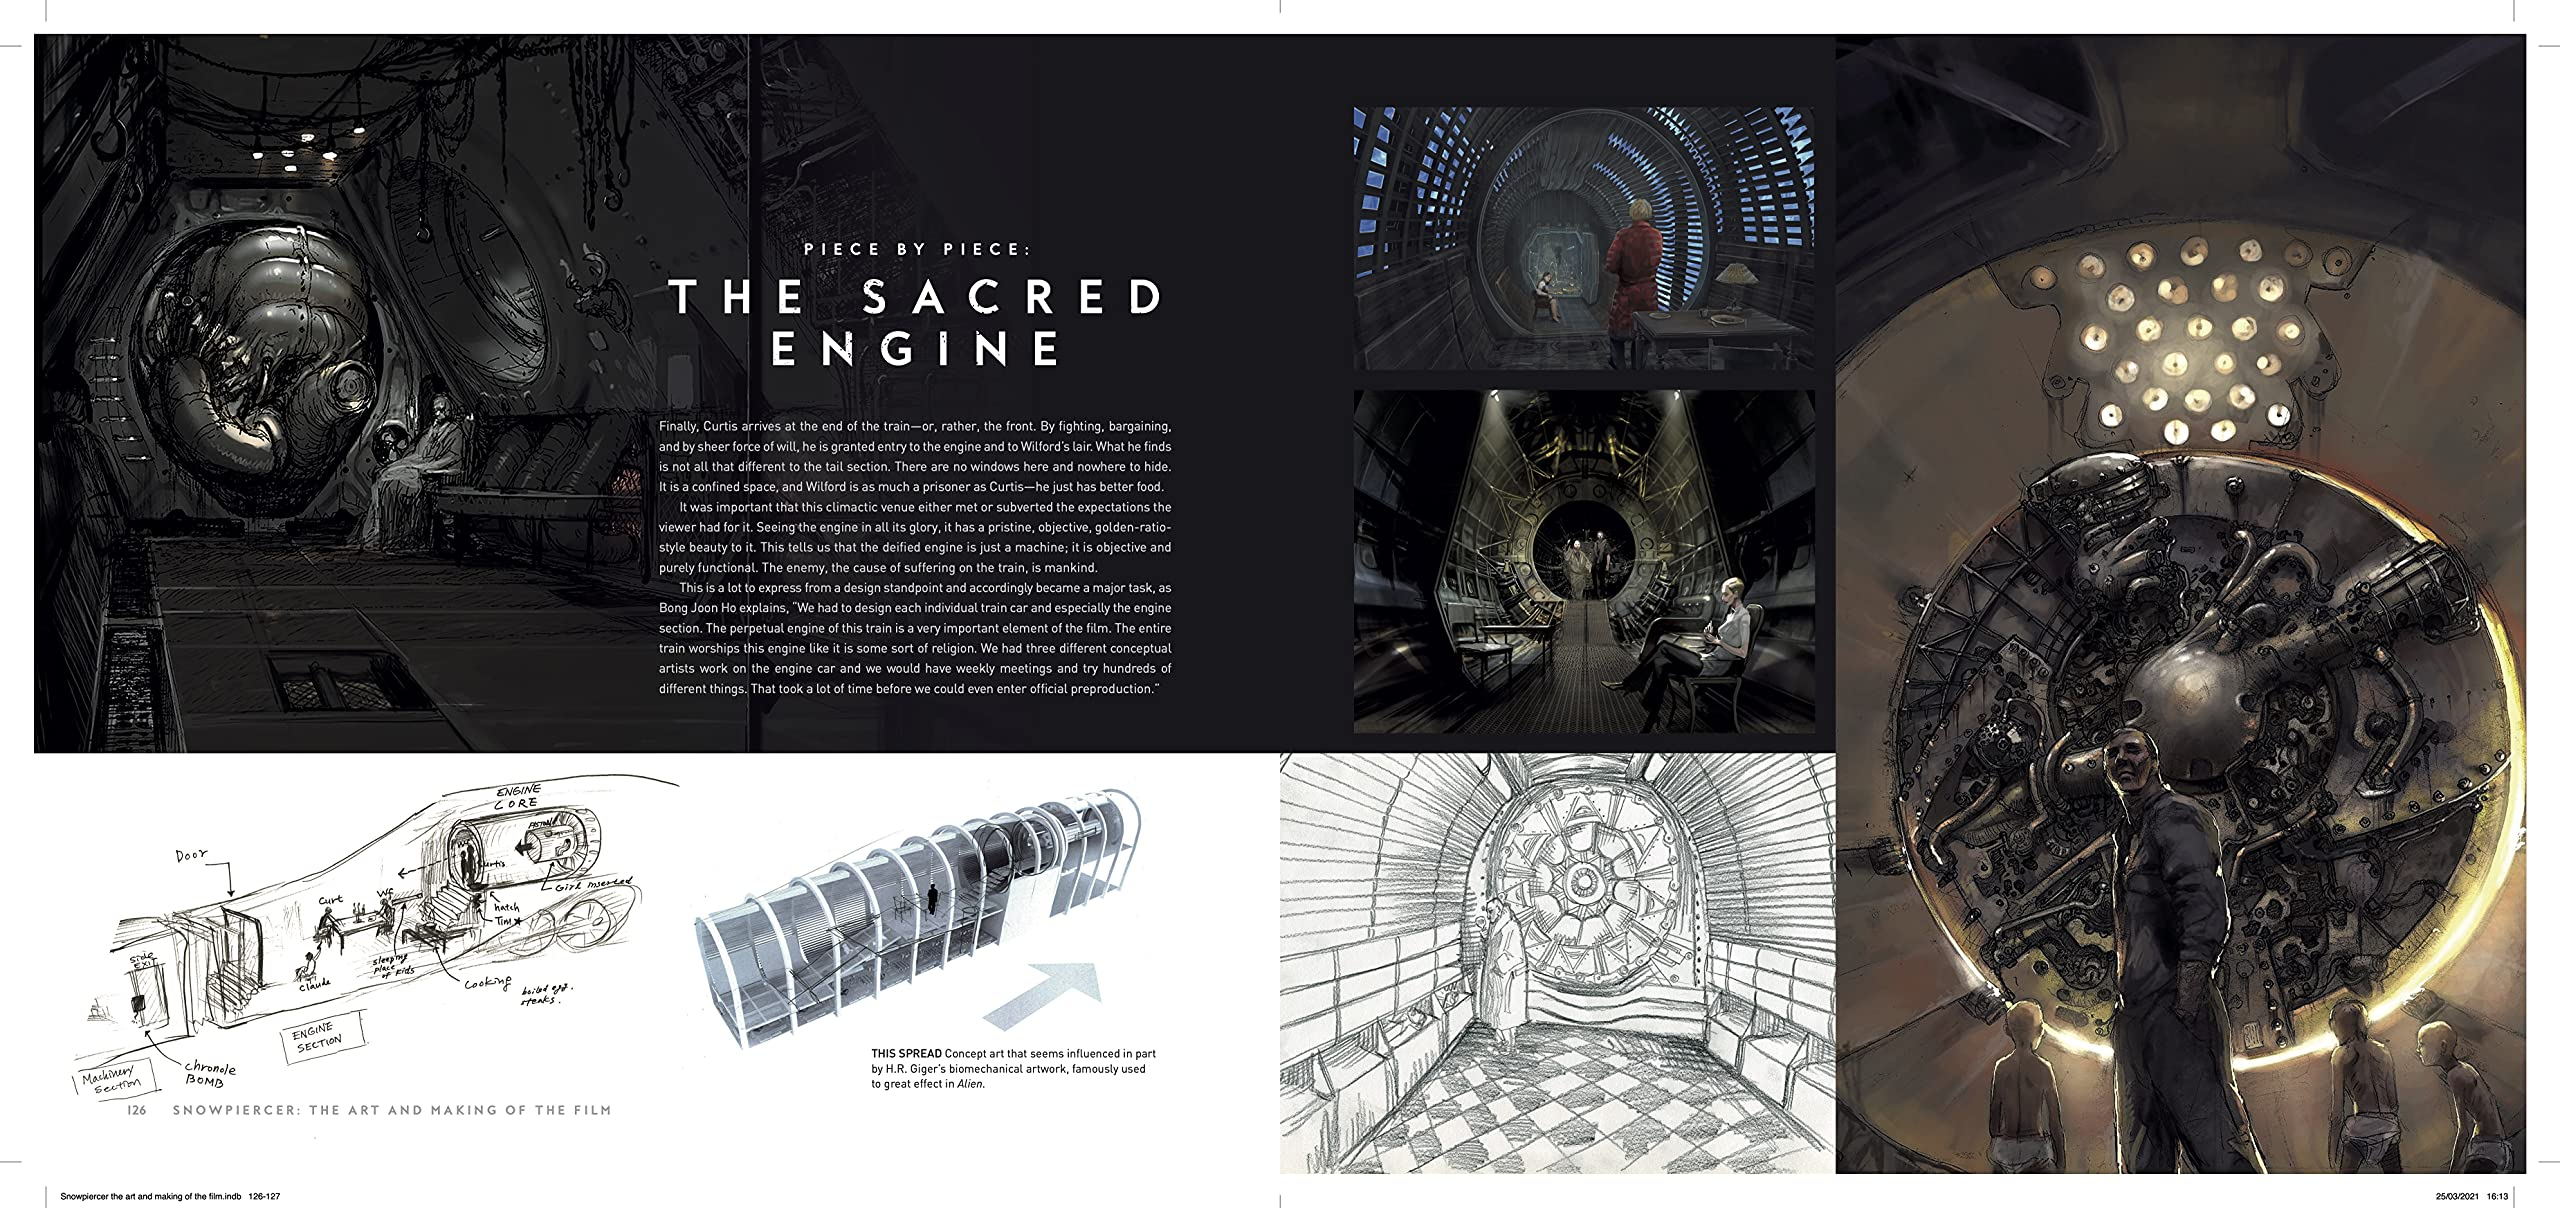 Snowpiercer: The Art and Making of the Film Book